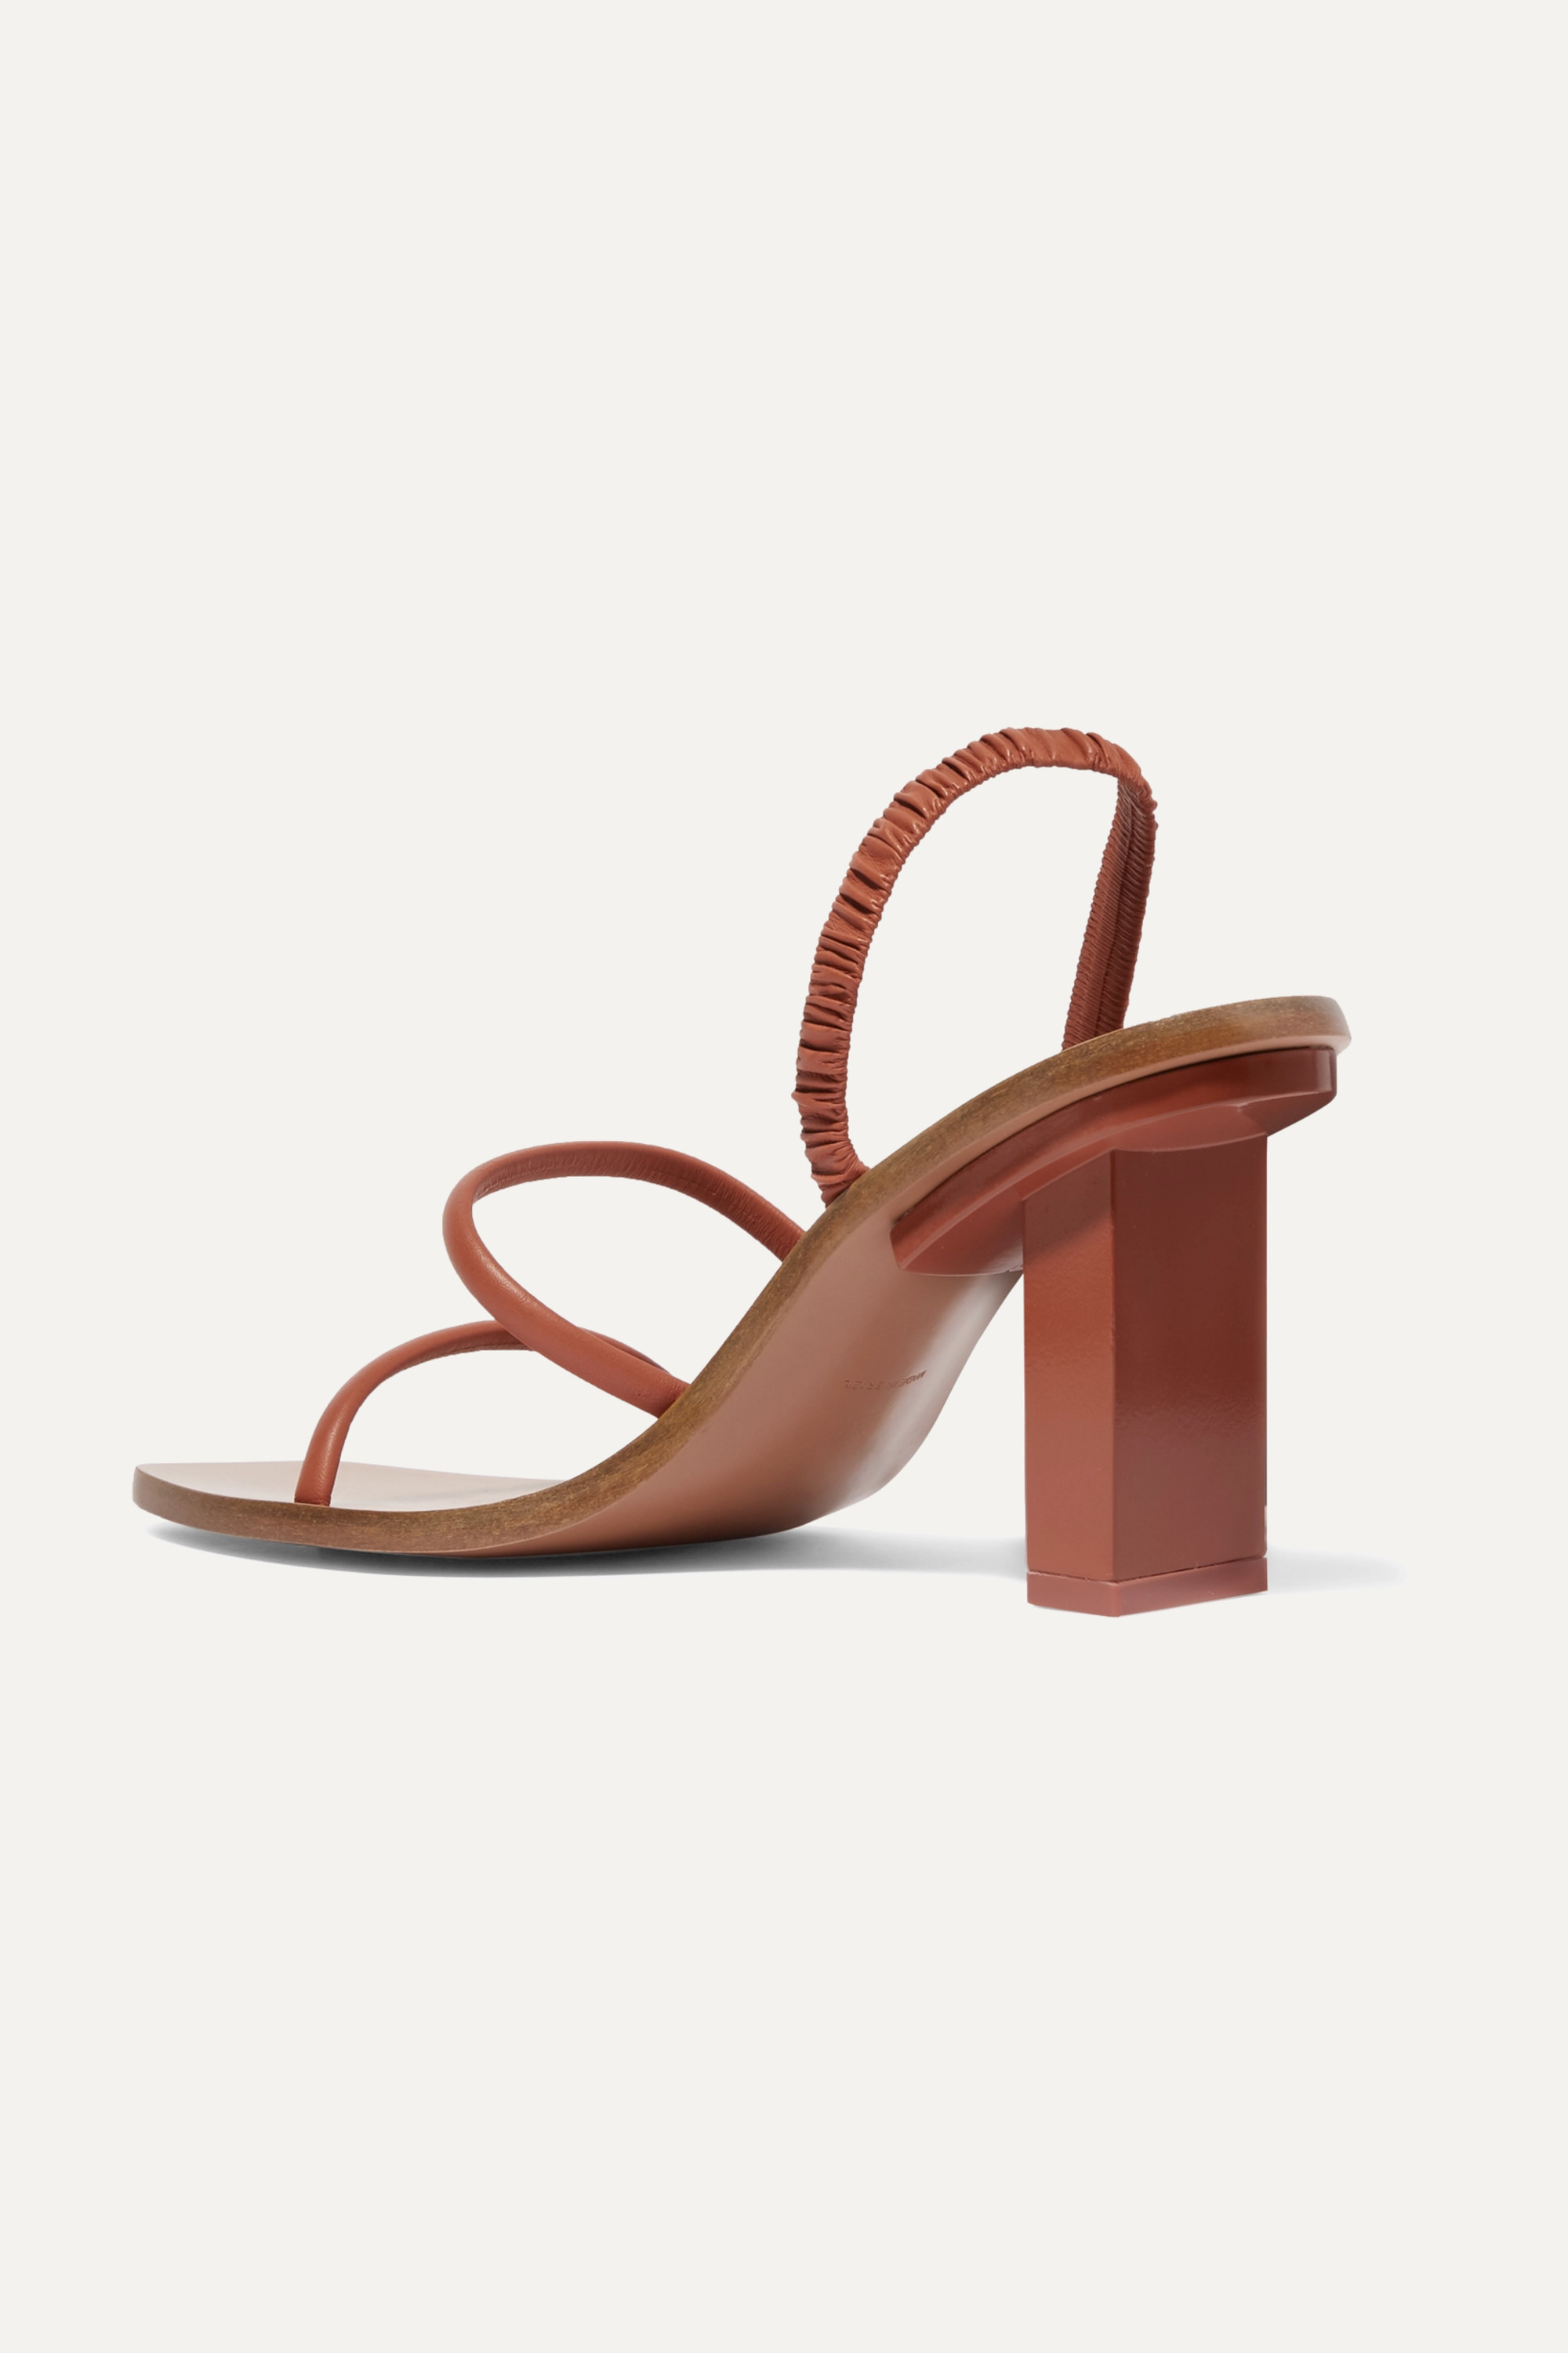 Cult Gaia Kaia ruched leather sandals